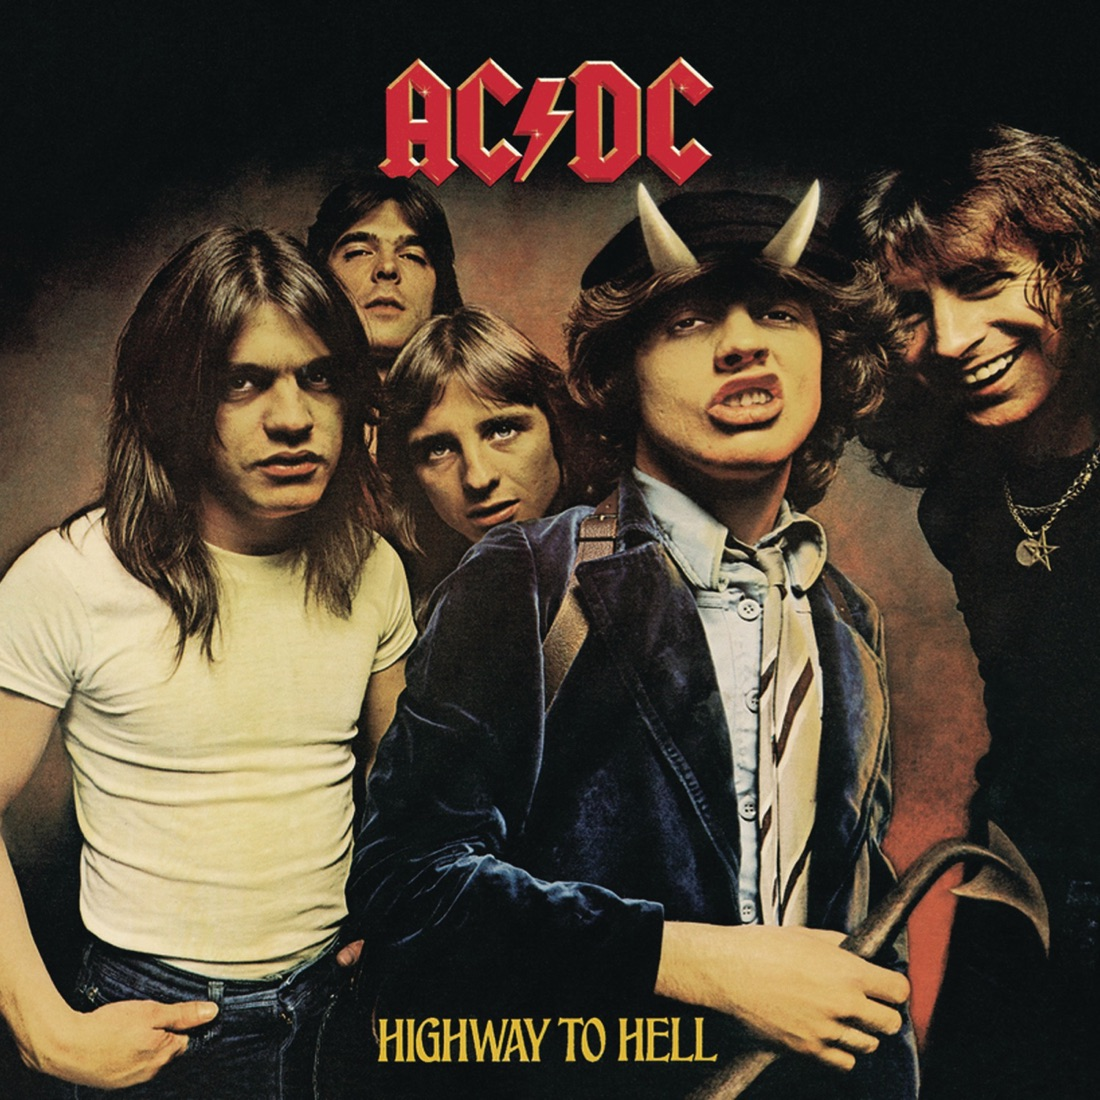 ac dc highway to hell mp3 free download skull